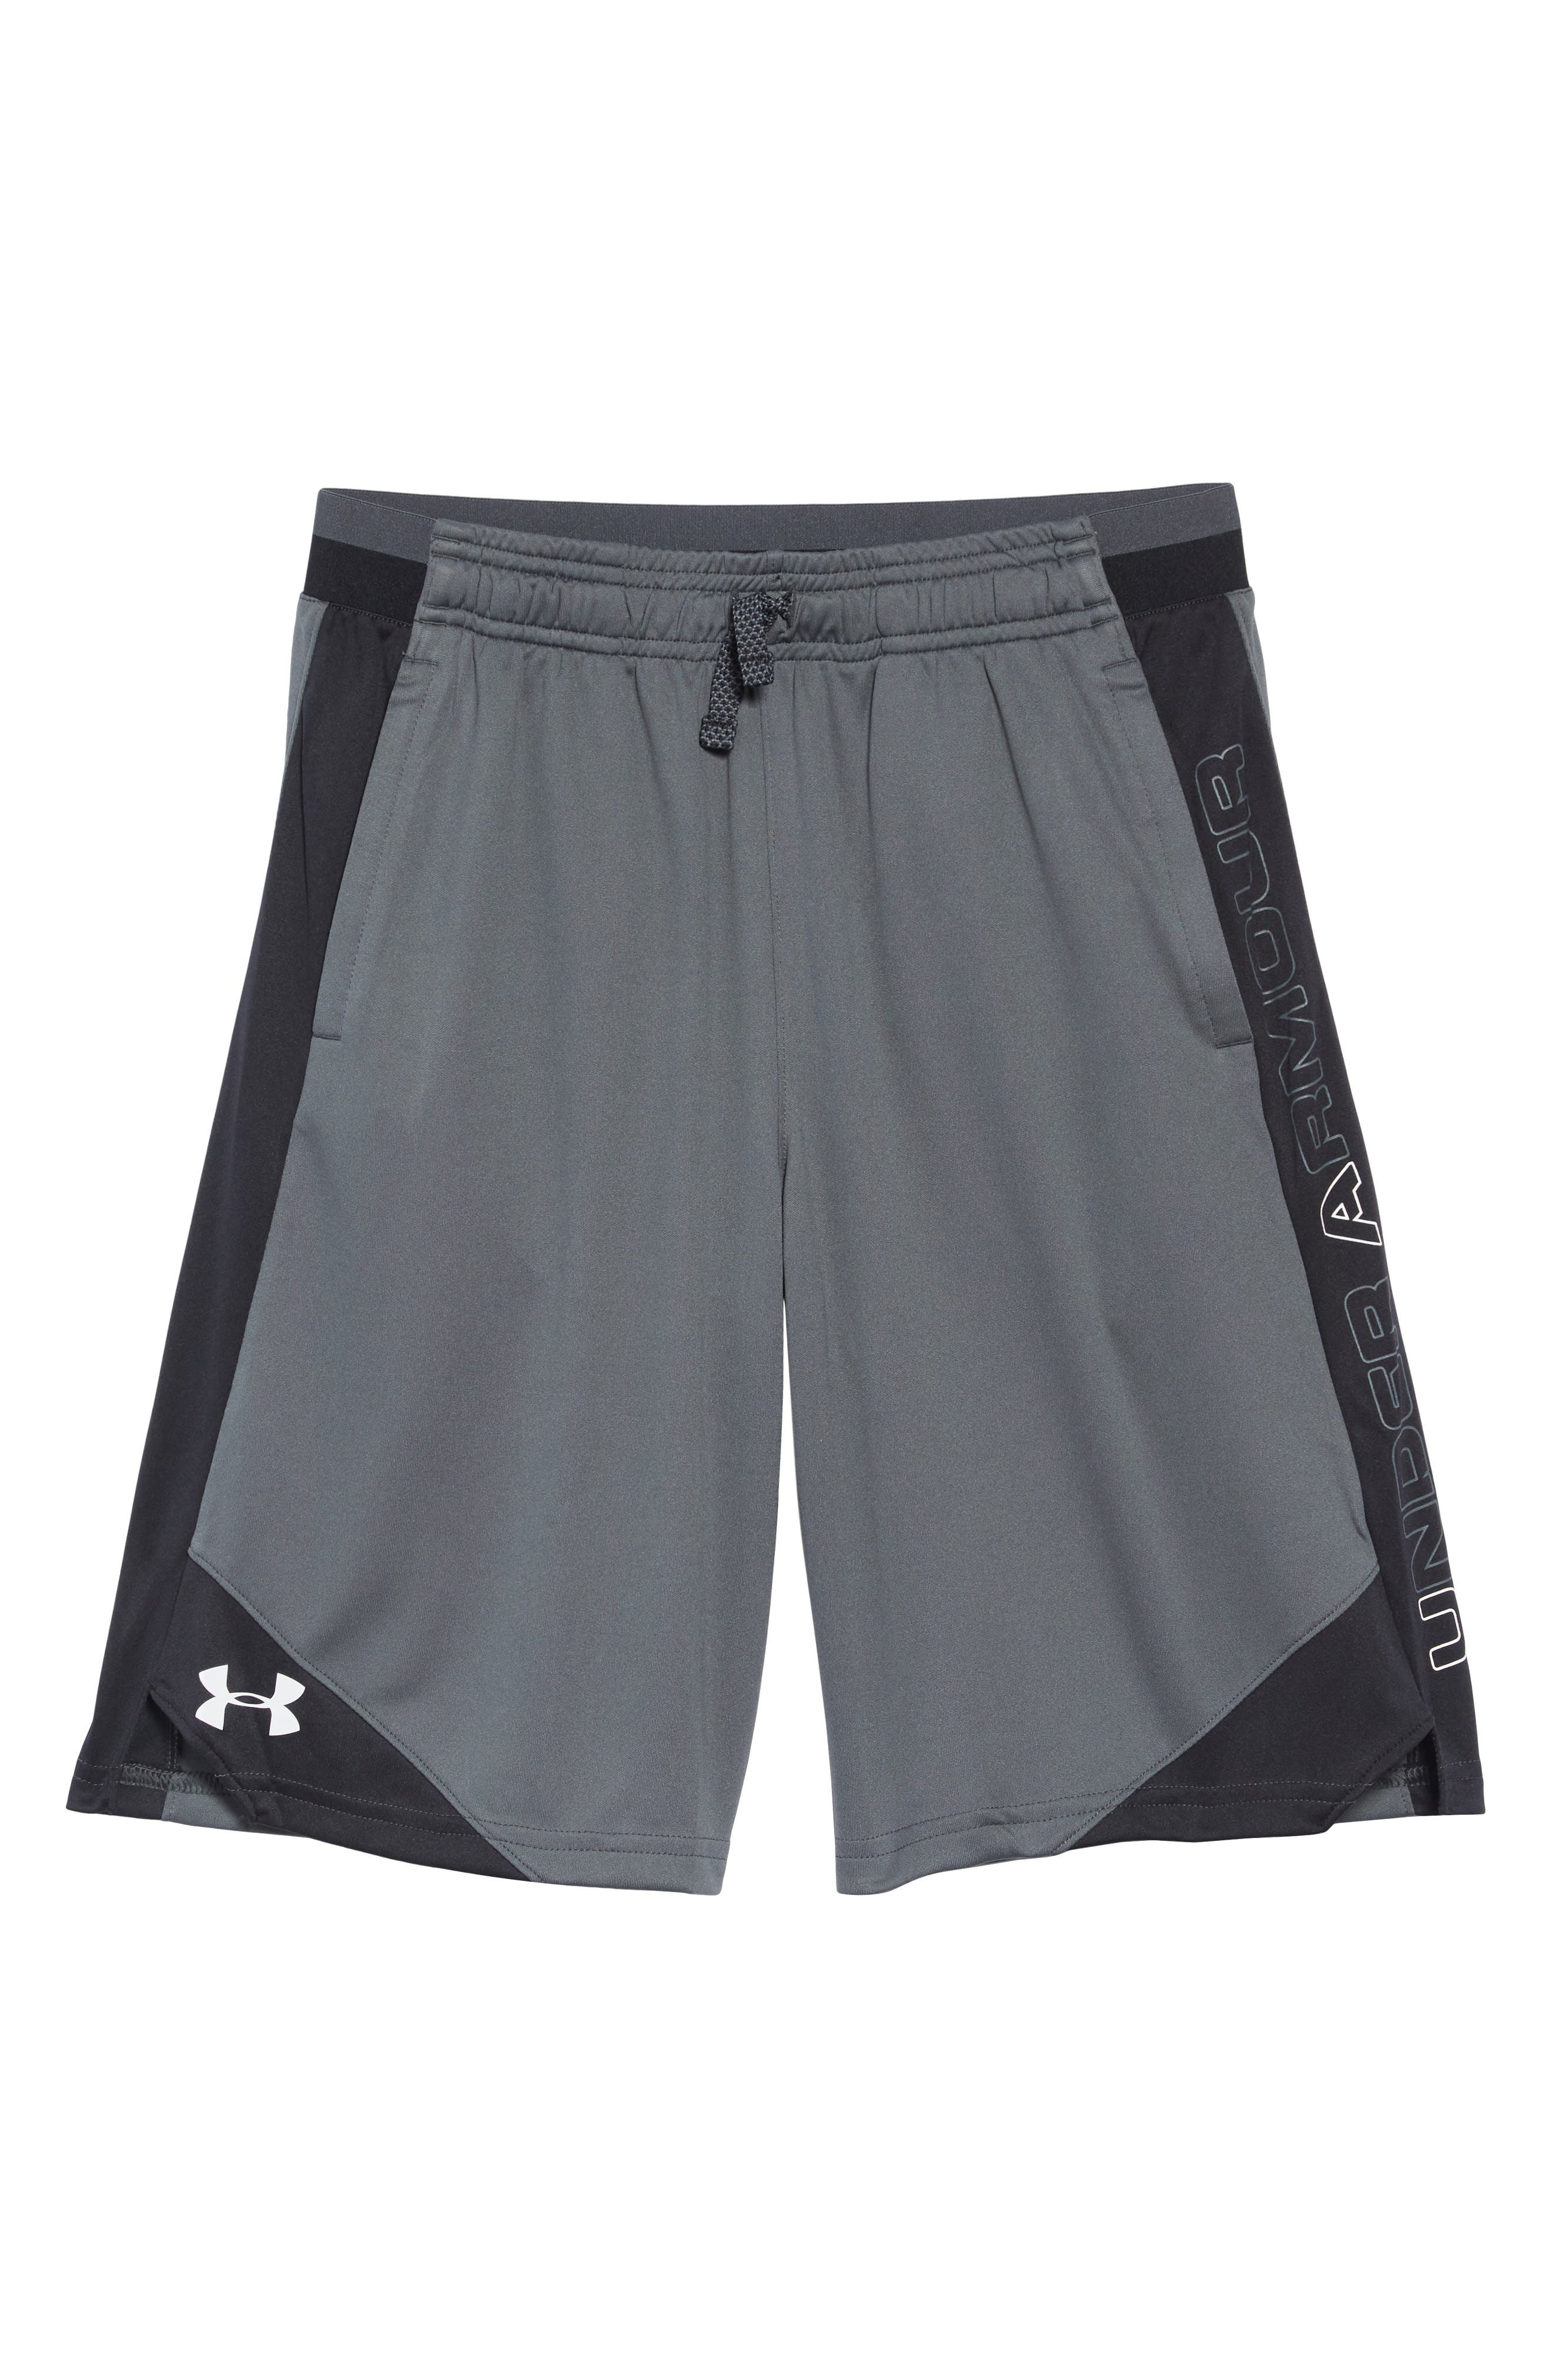 UNDER ARMOUR, Stunt 2 Shorts, Main thumbnail 1, color, PITCH GRAY/ WHITE